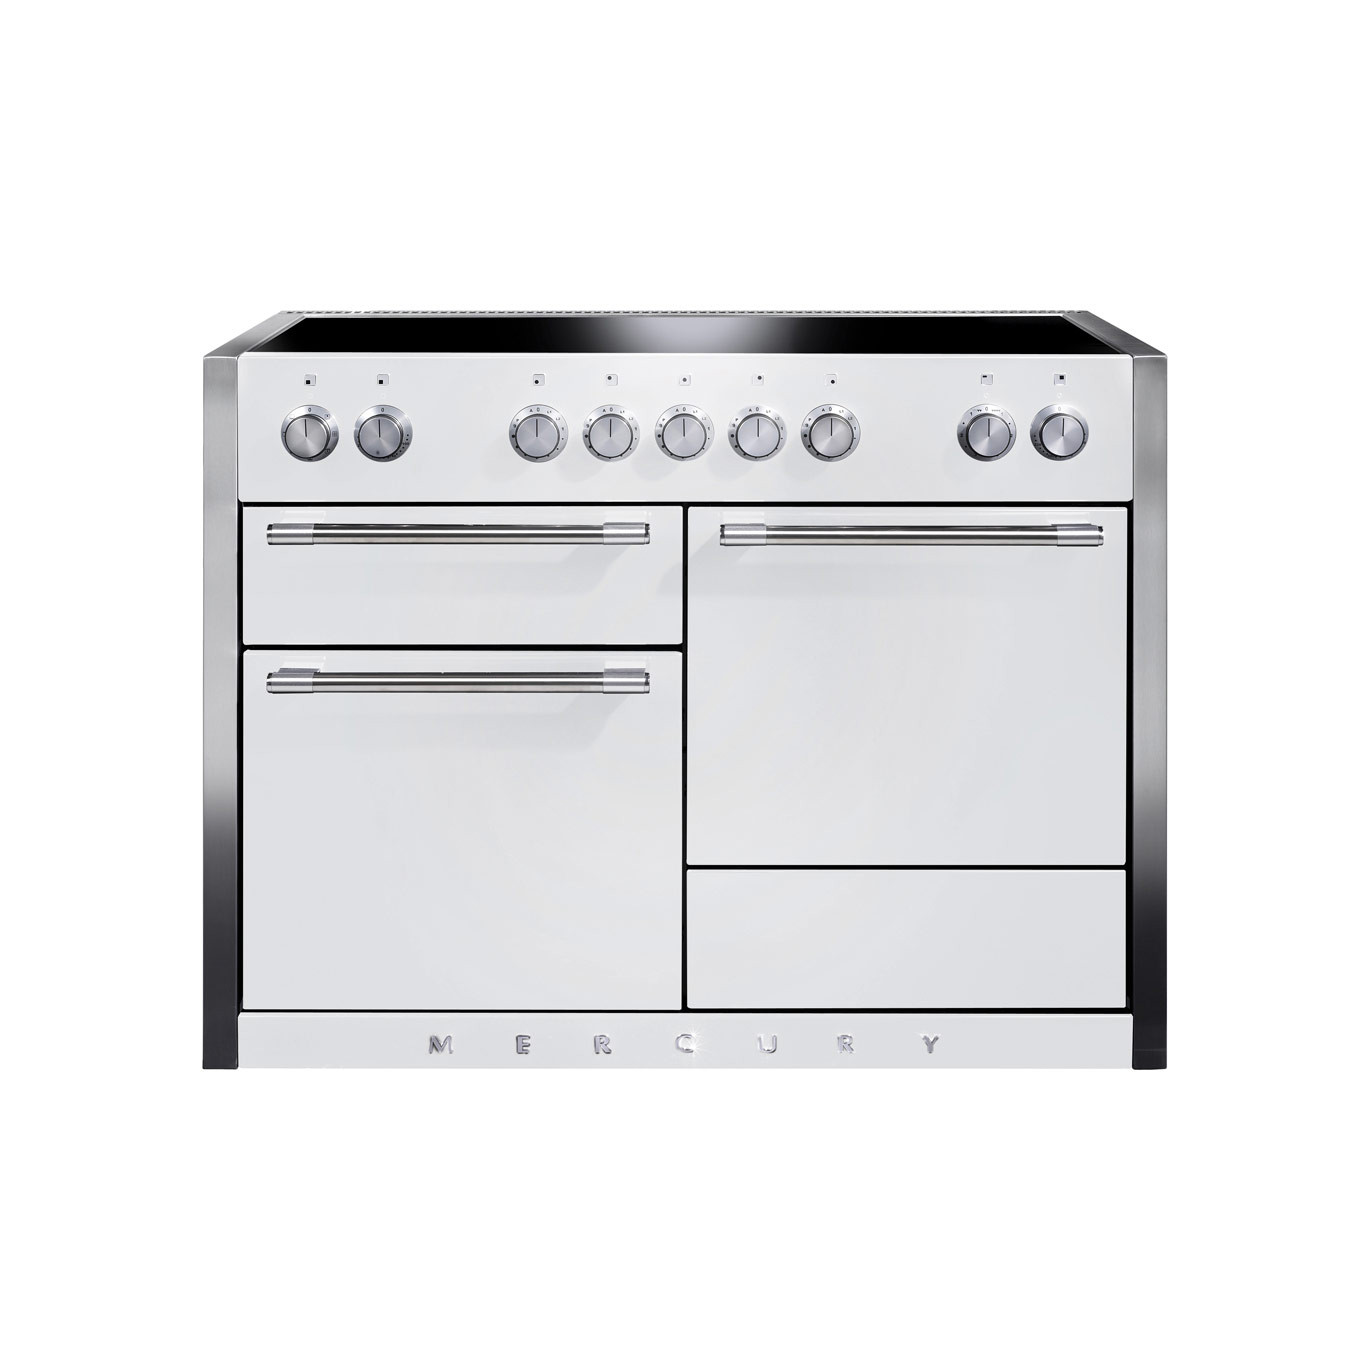 Mercury MCY1200EI Induction Snowdrop Range Cooker